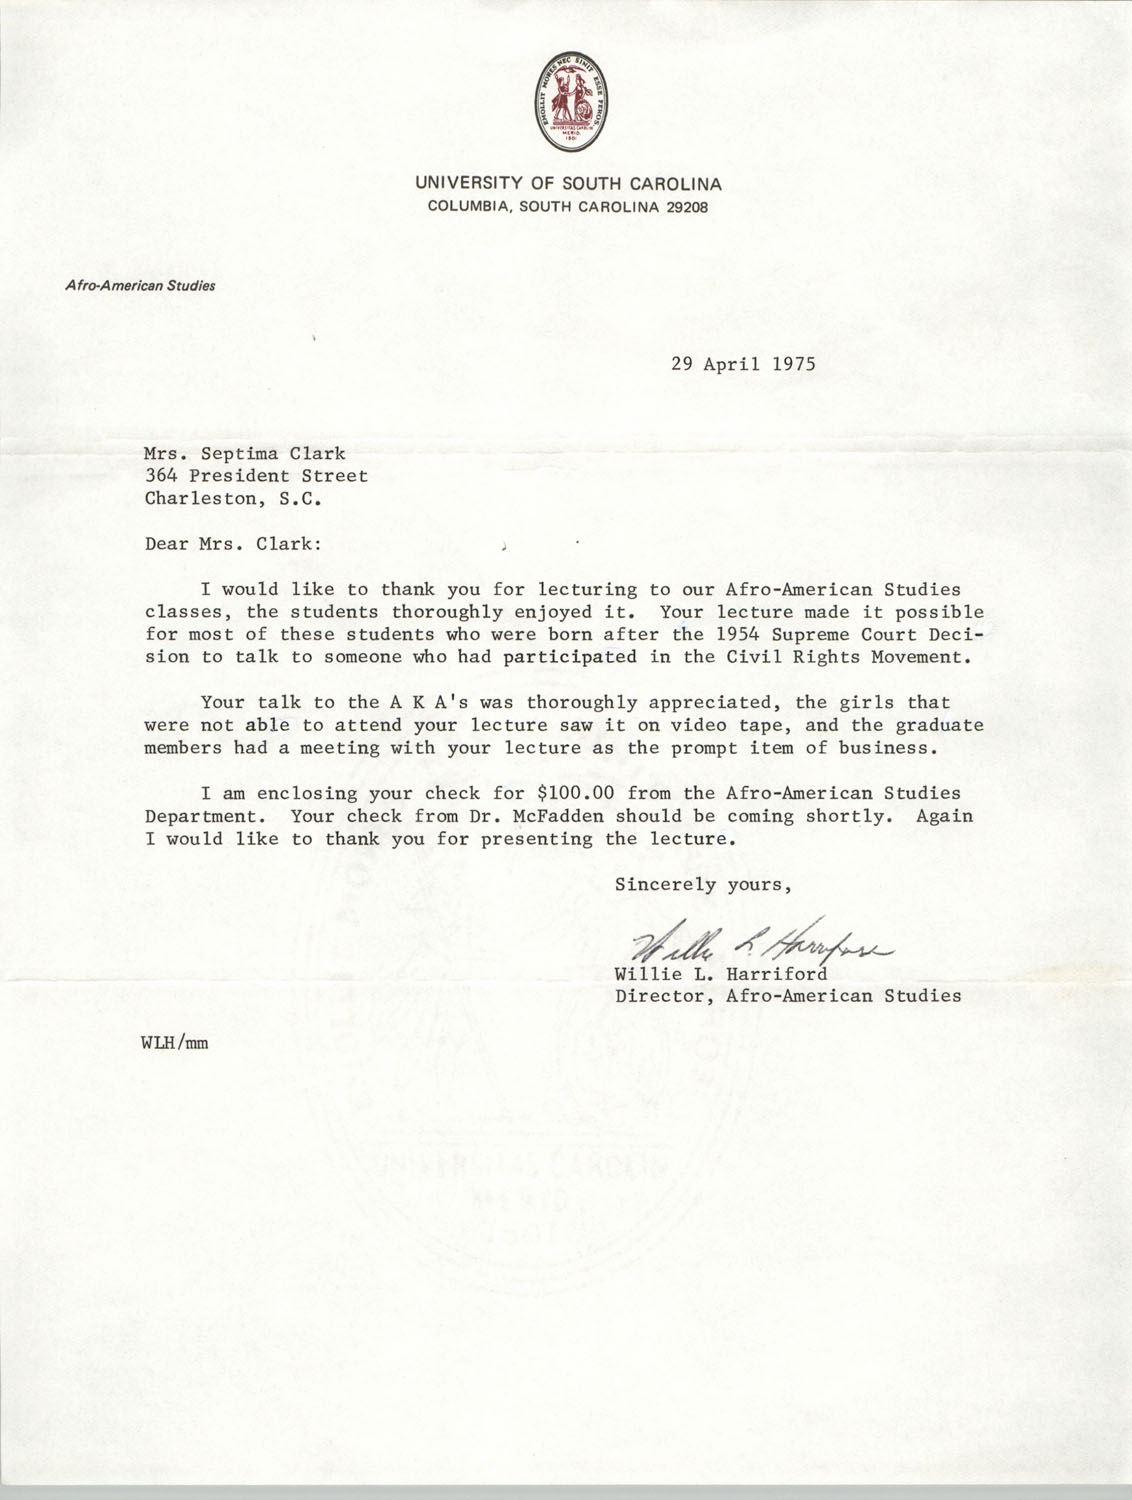 Letter from Willie L. Harriford to Septima Clark, April 29, 1975